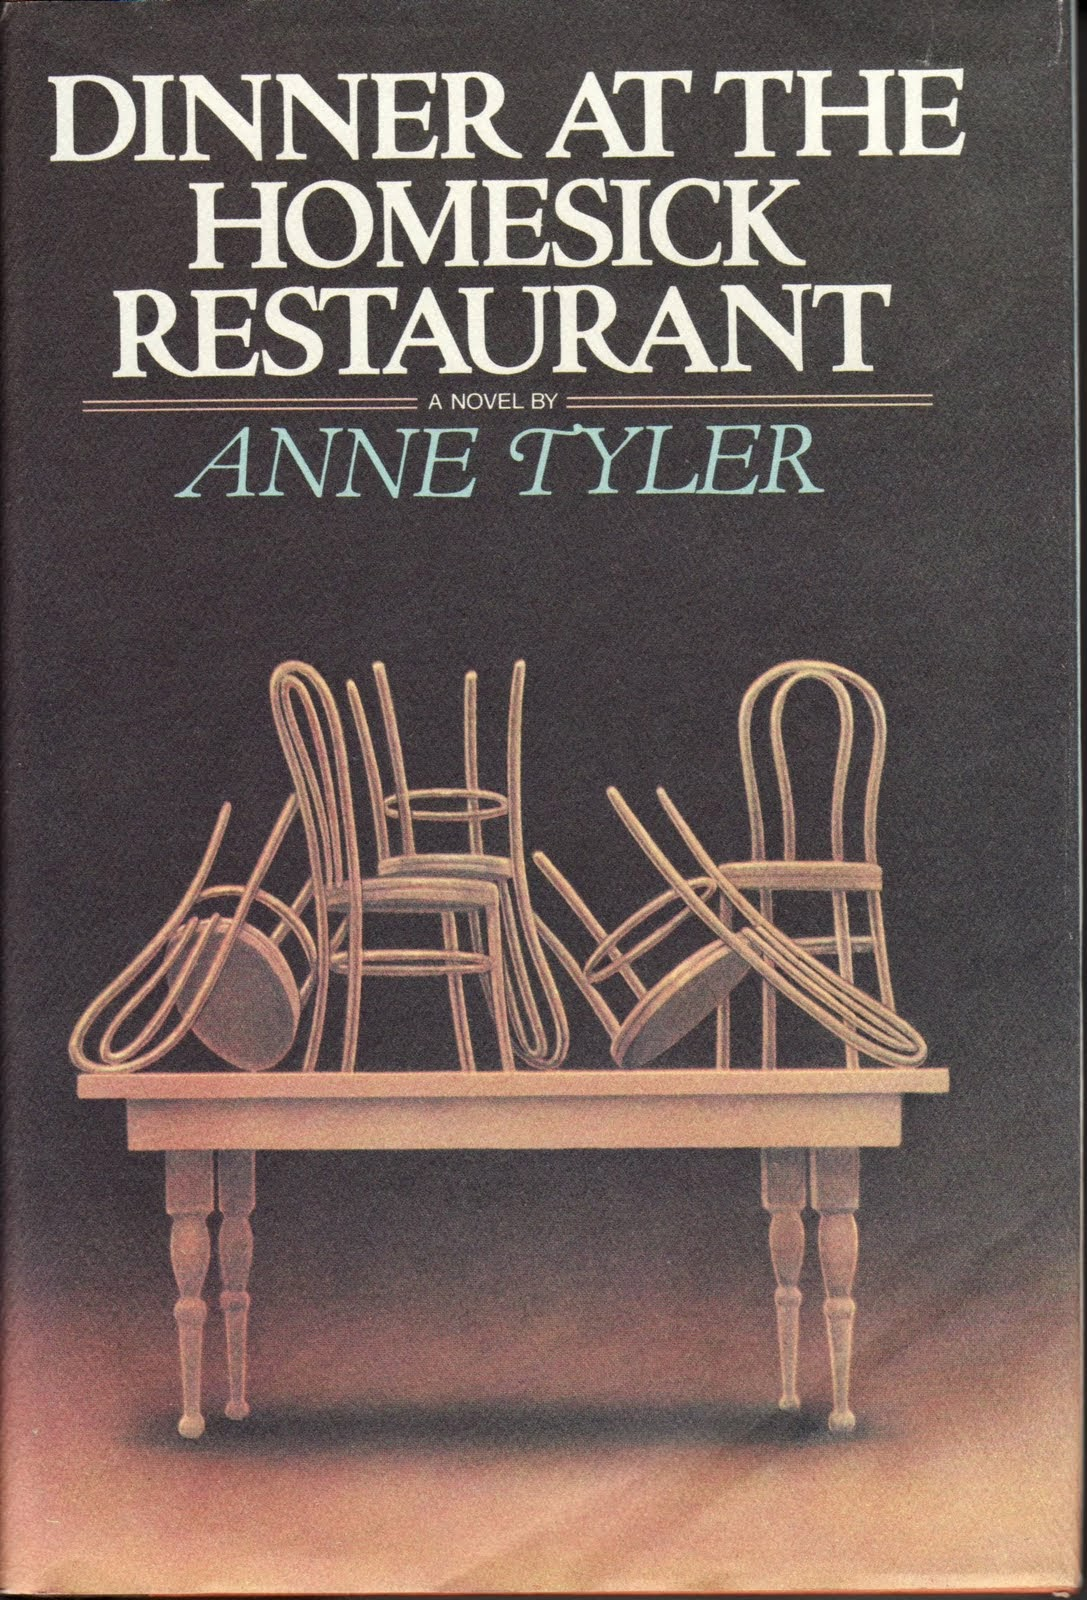 a review of the anne tylers dinner at the homesick restaurant All about reviews: dinner at the homesick restaurant by anne tyler librarything is a cataloging and social networking site for booklovers.